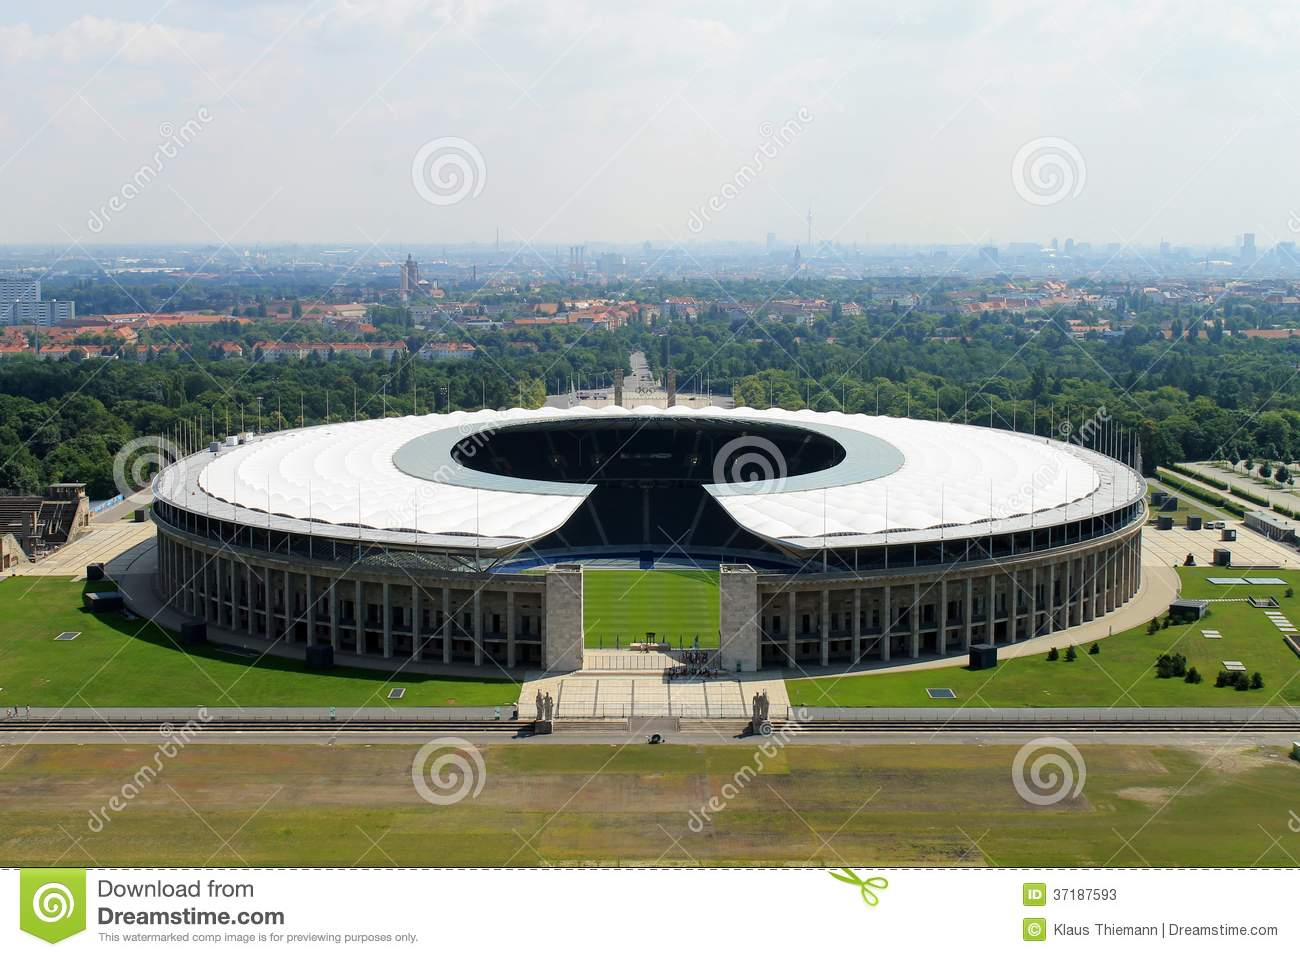 The Olympic stadium from Berlin.